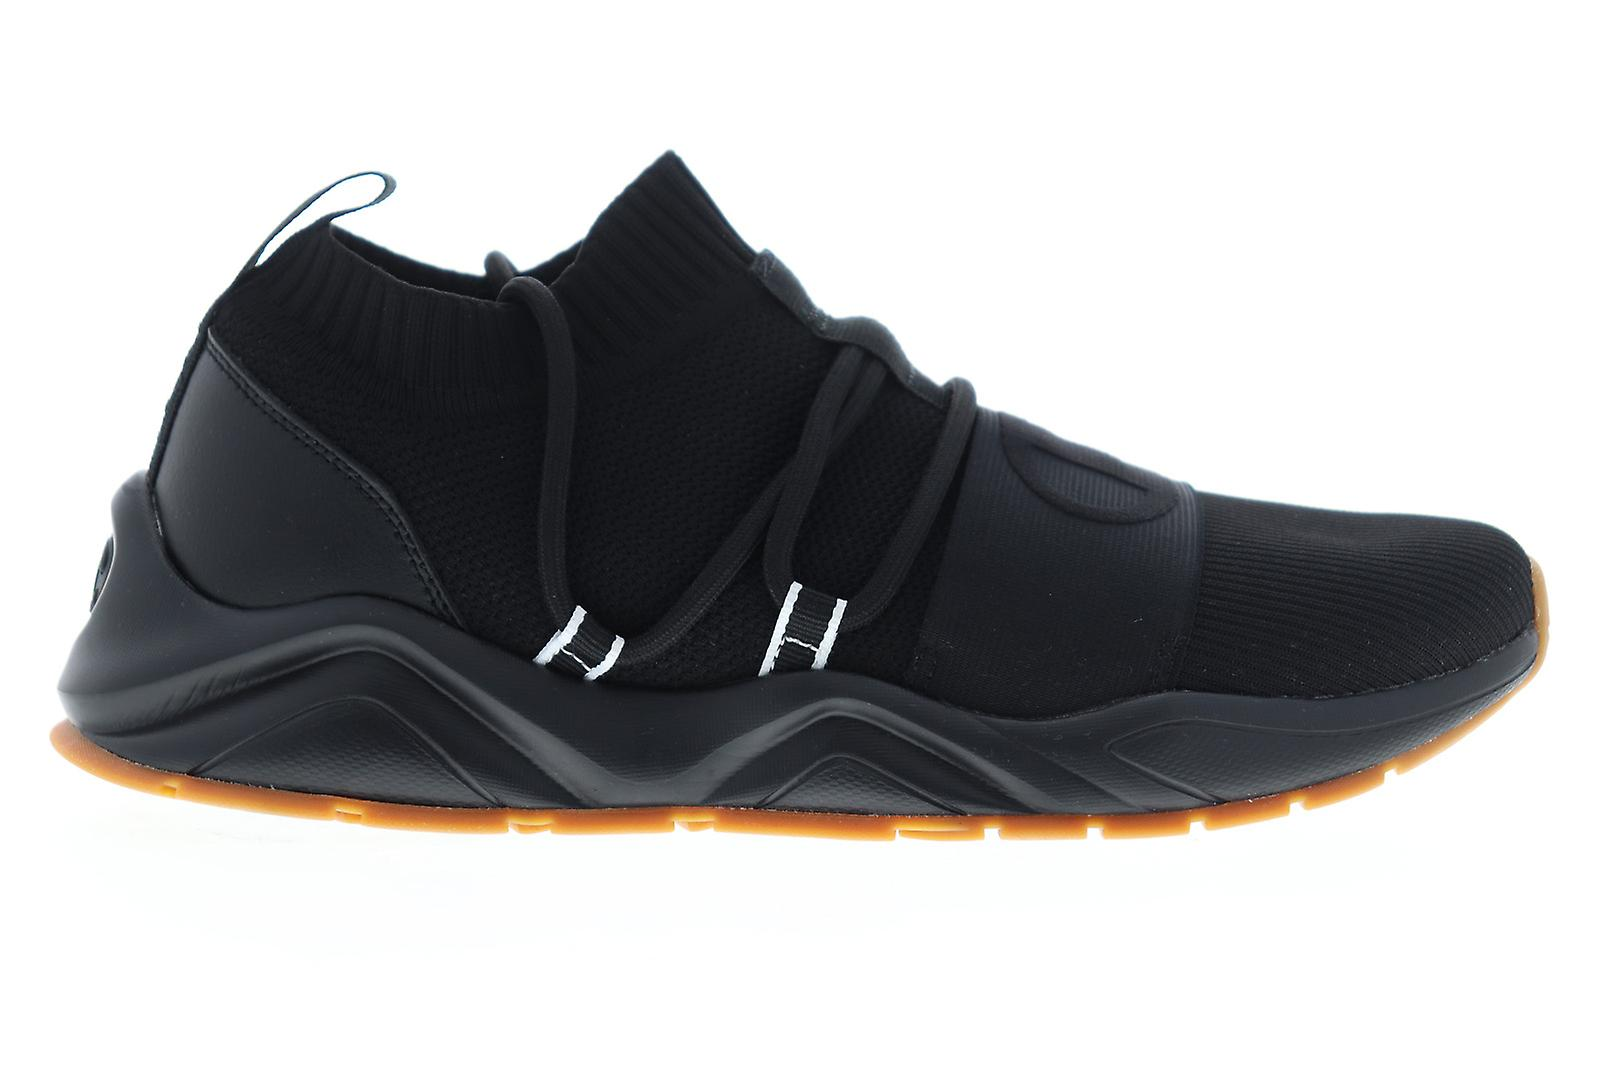 Campione Rally Hype LO Uomini Nero Canvas Low Top Sneakers Scarpe UxAkAz